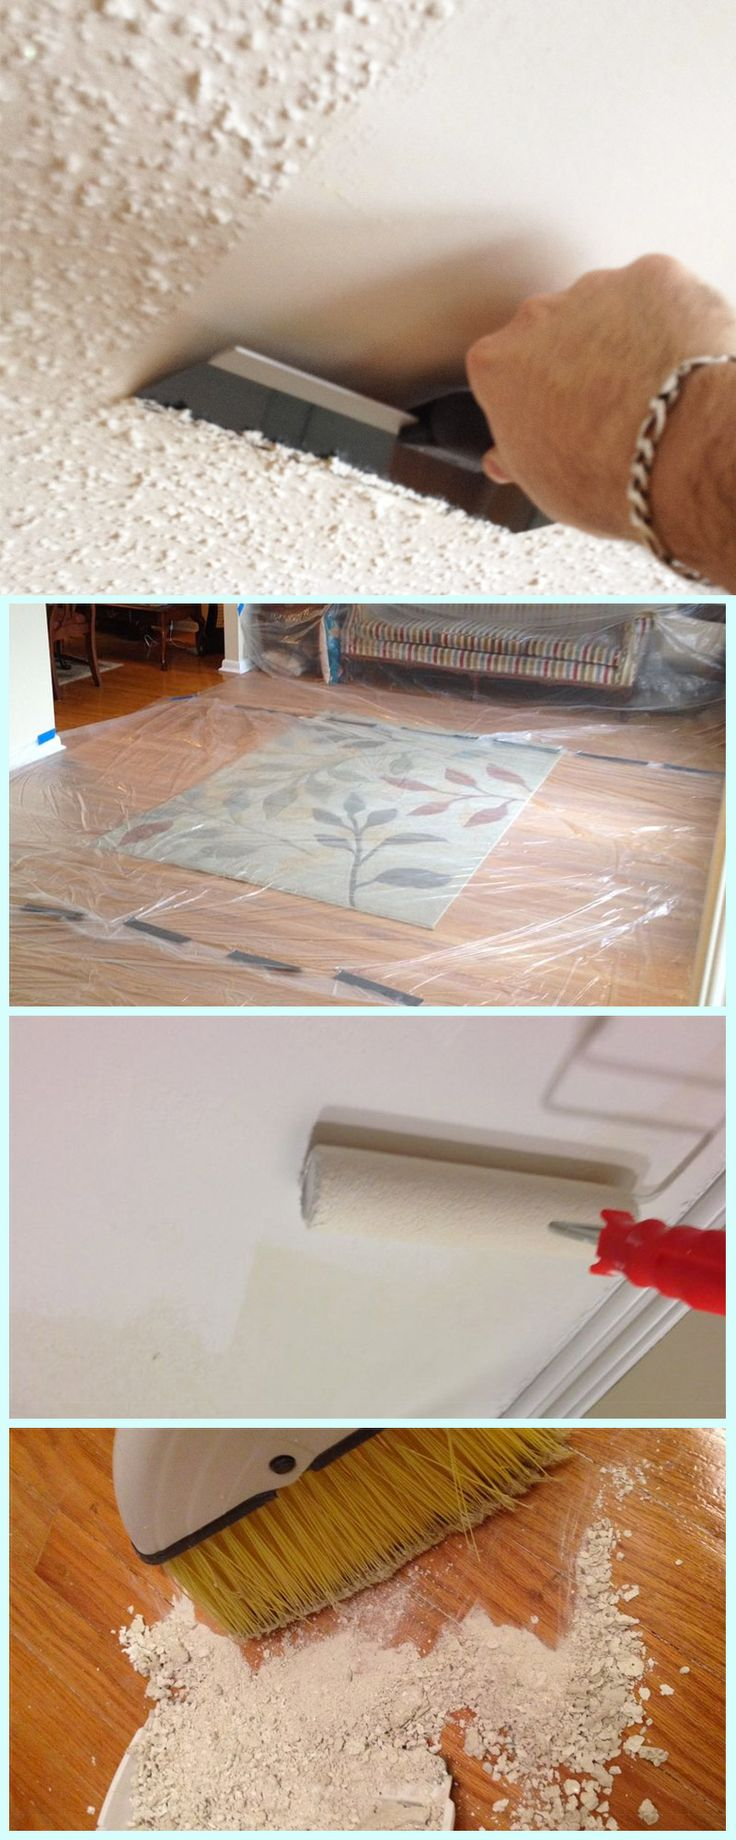 This surprisingly easy DIY home improvement can be completed in a single  day. - lydia1723 - Pctr UP